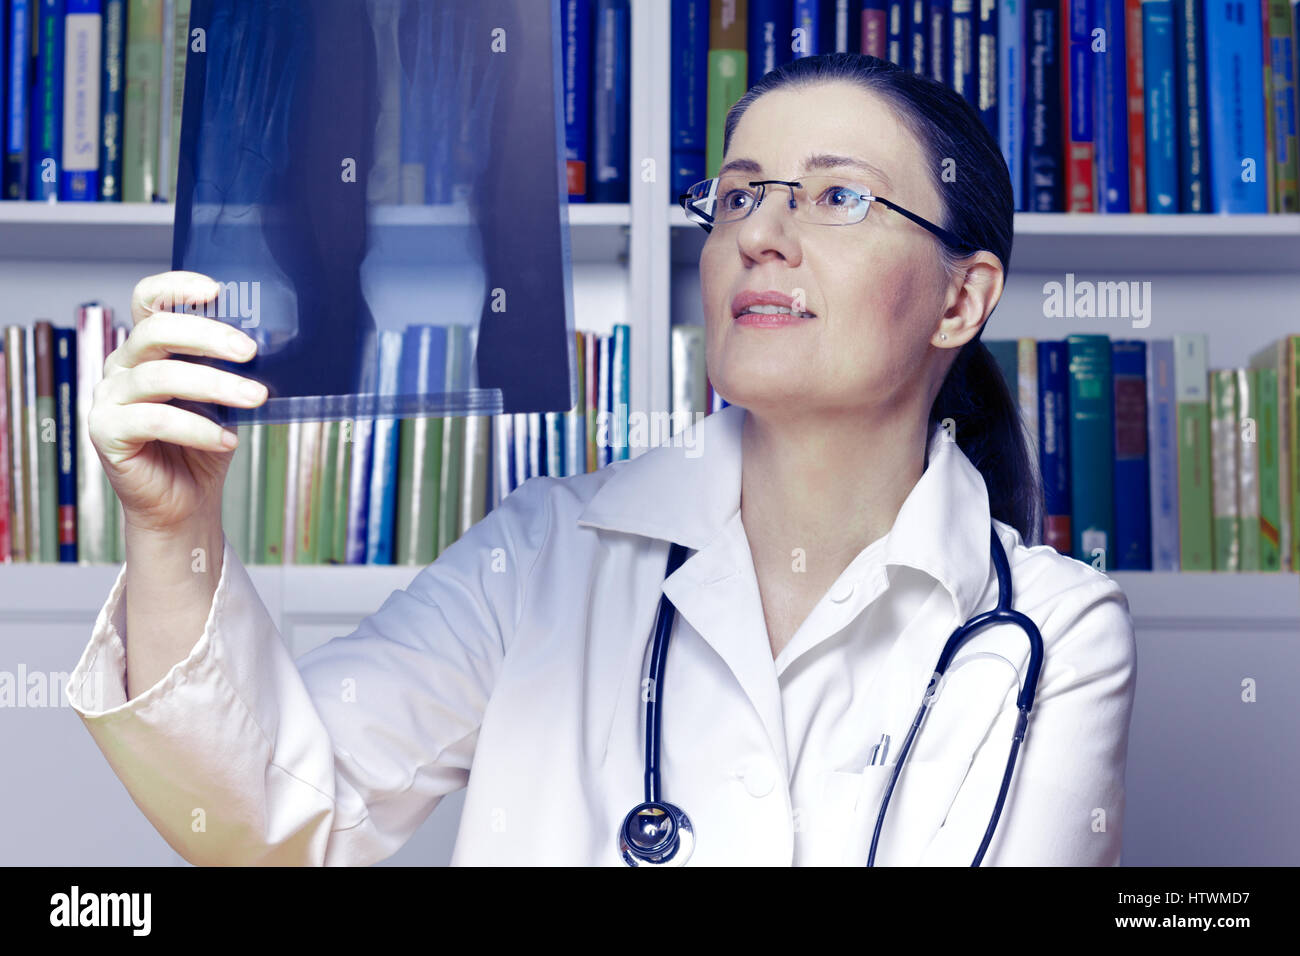 Female doctor or radiologist with stethoscope and an x-ray of a foot in hand as seen through a webcam, blue filter - Stock Image